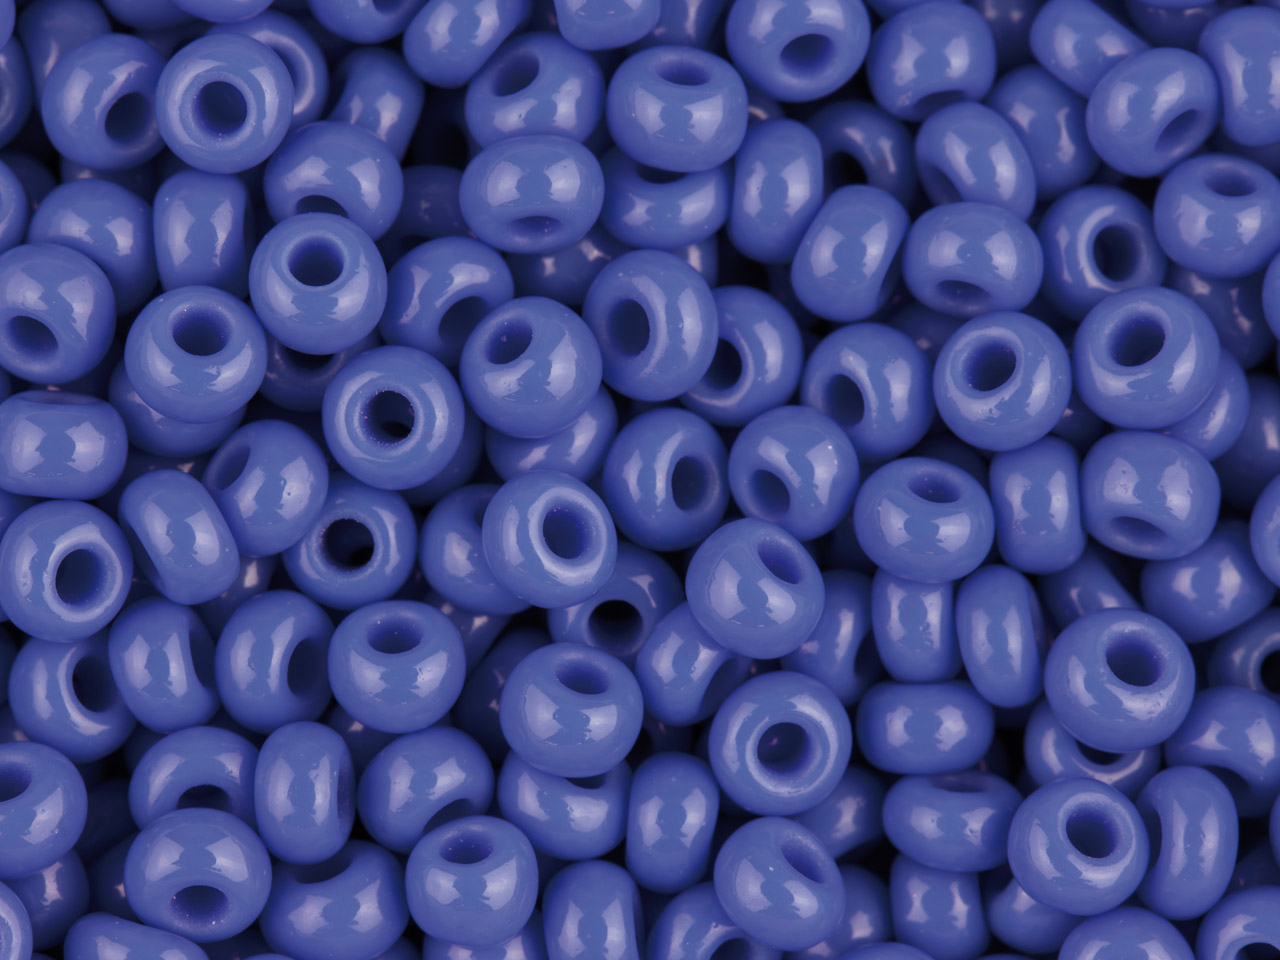 Abalorios Checos De Rocalla 8/0. Opacos. Color Azul. Pack De 20gr.